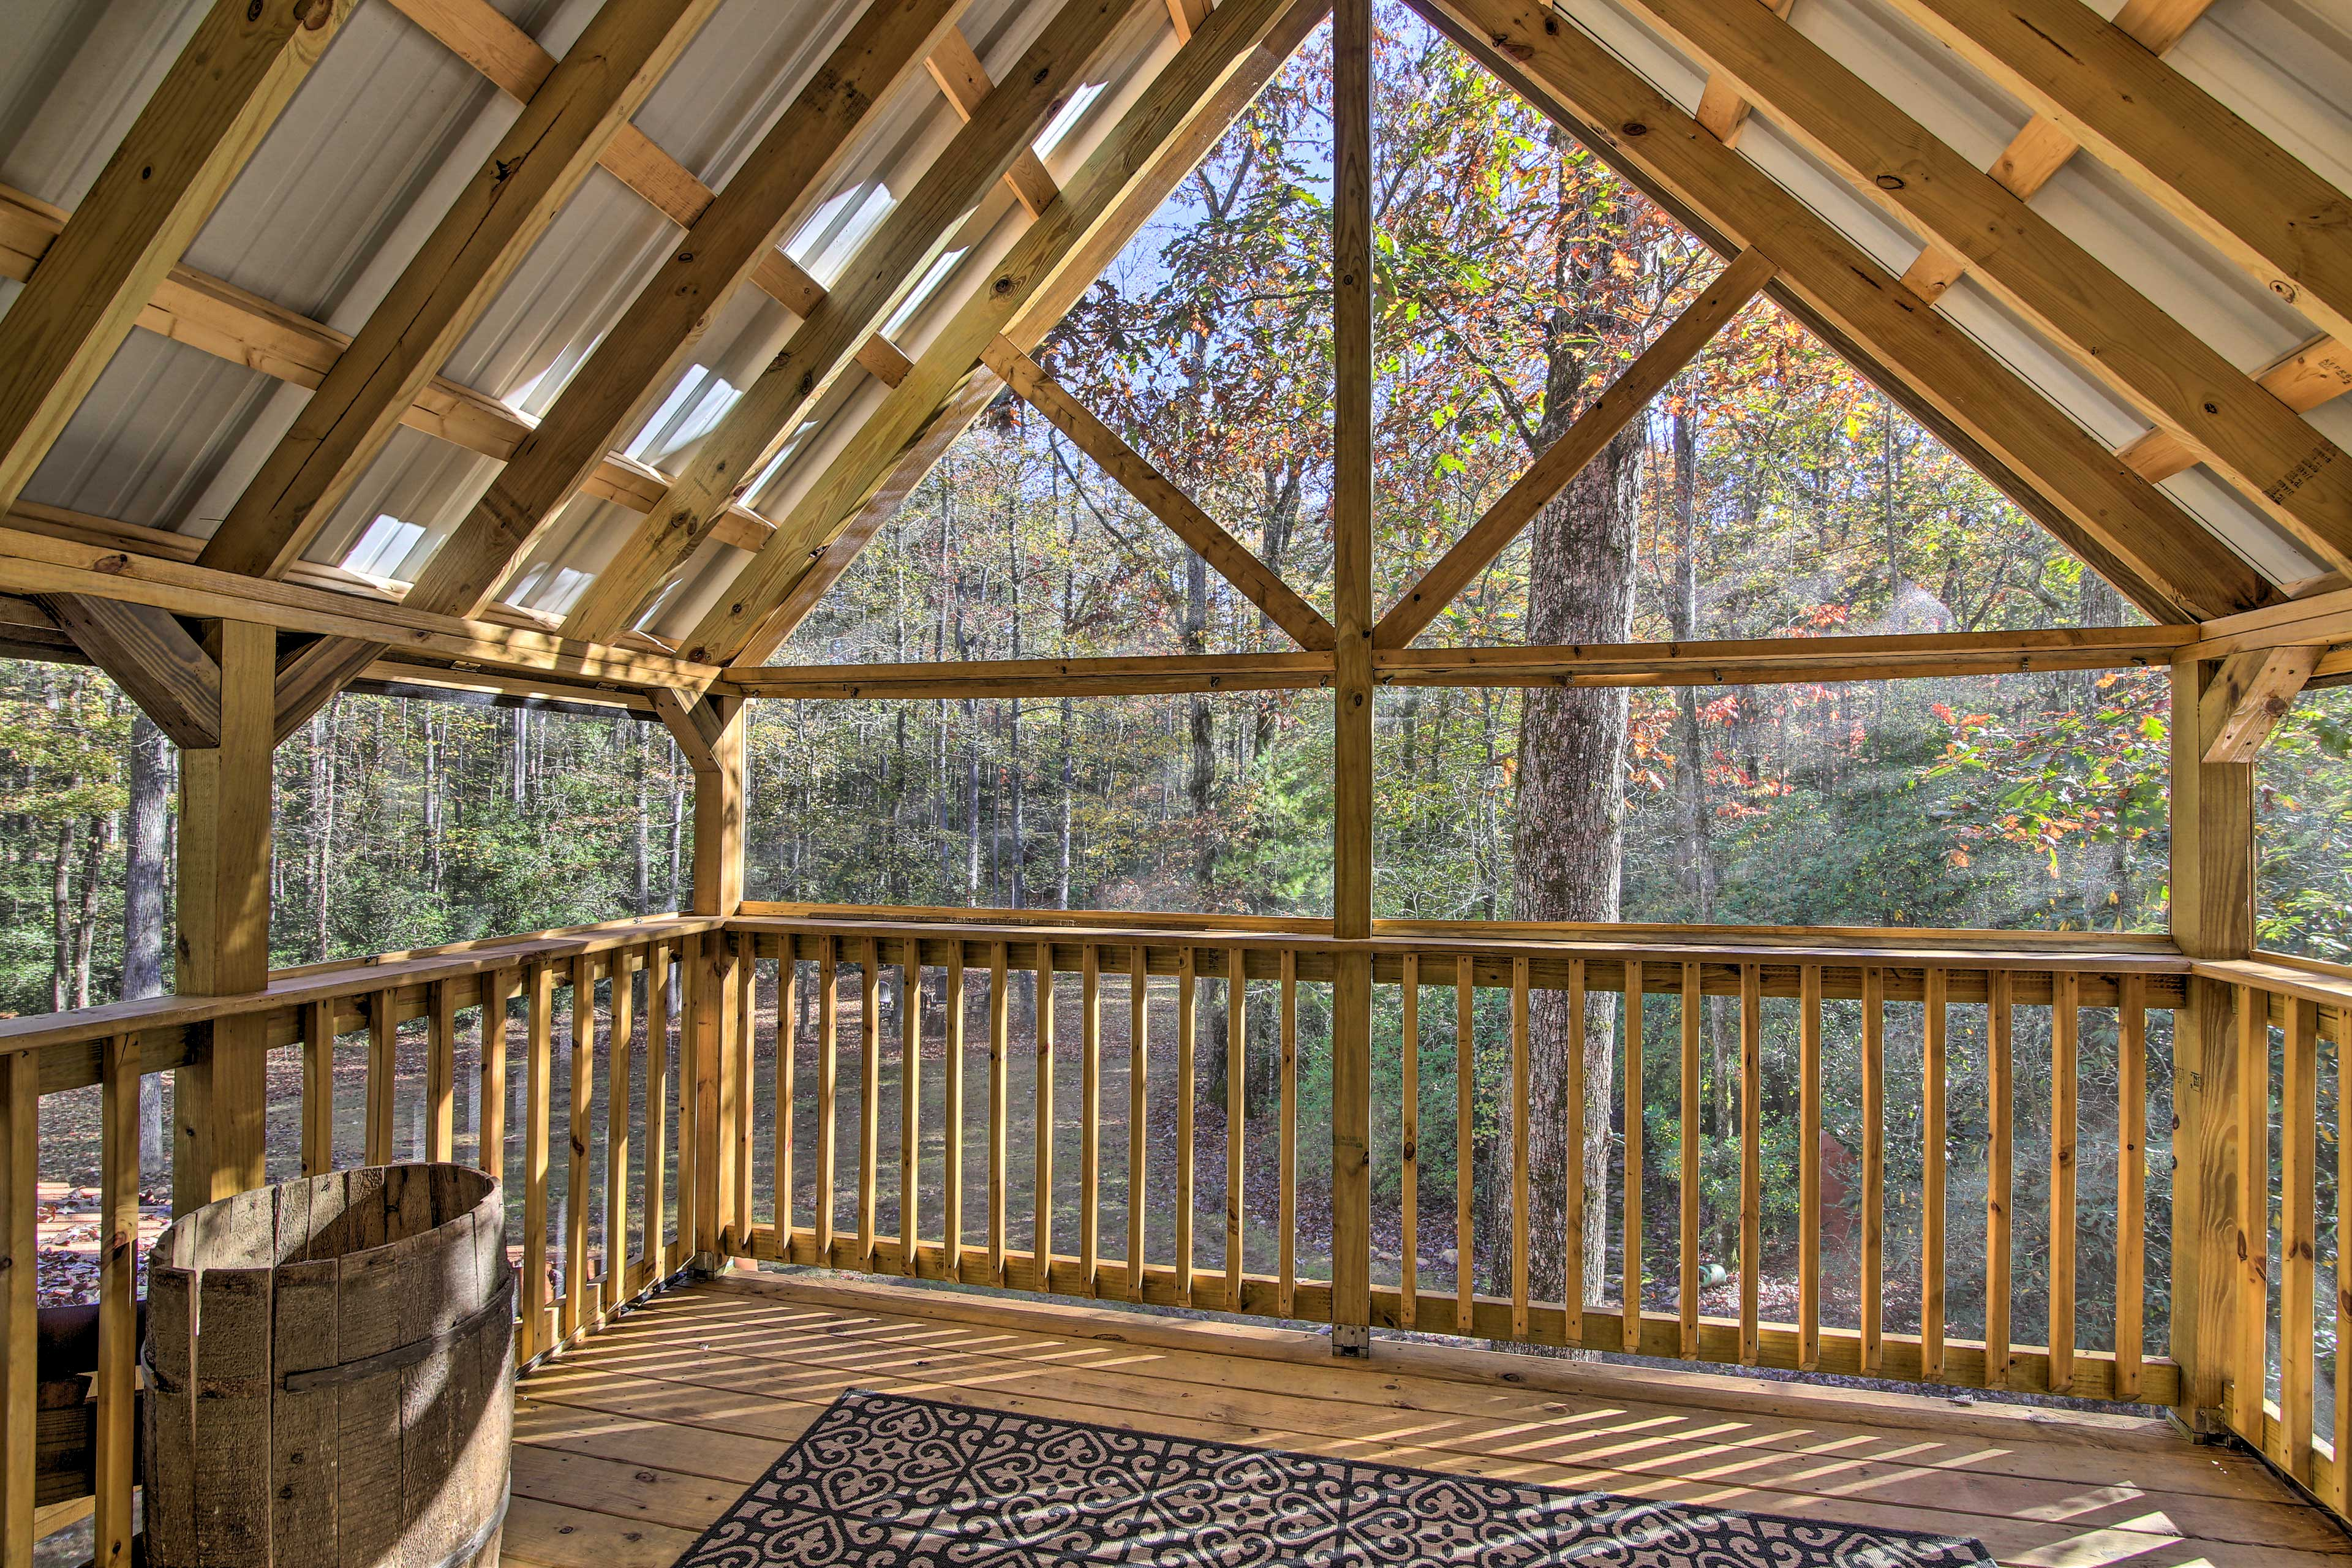 Step out onto the balcony from the third bedroom to enjoy the forest views.